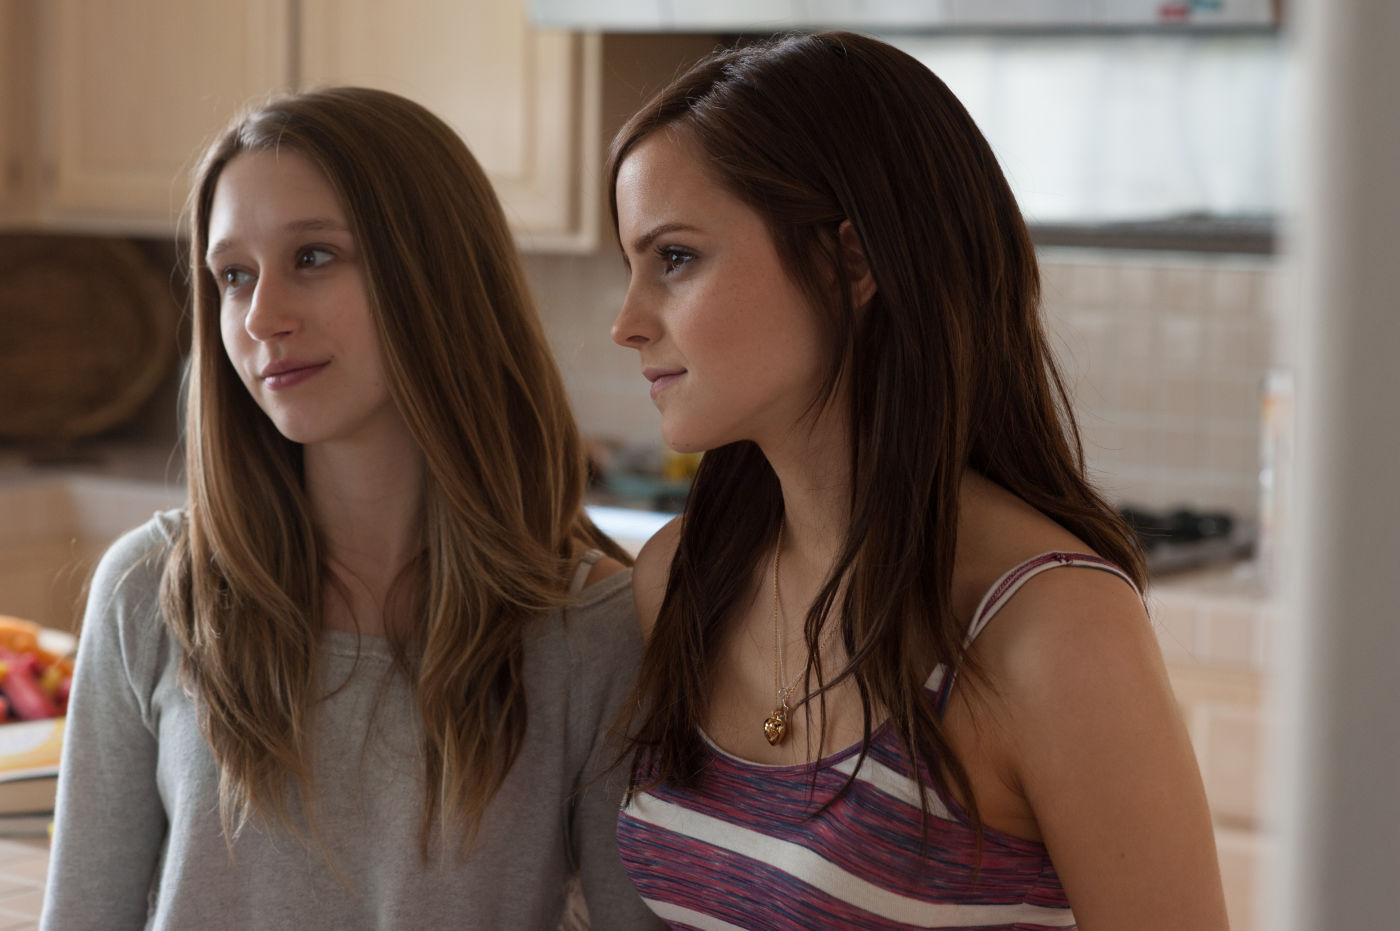 Taissa Farmiga Bling Ring: The Bling Ring 3 - Blackfilm.com/read